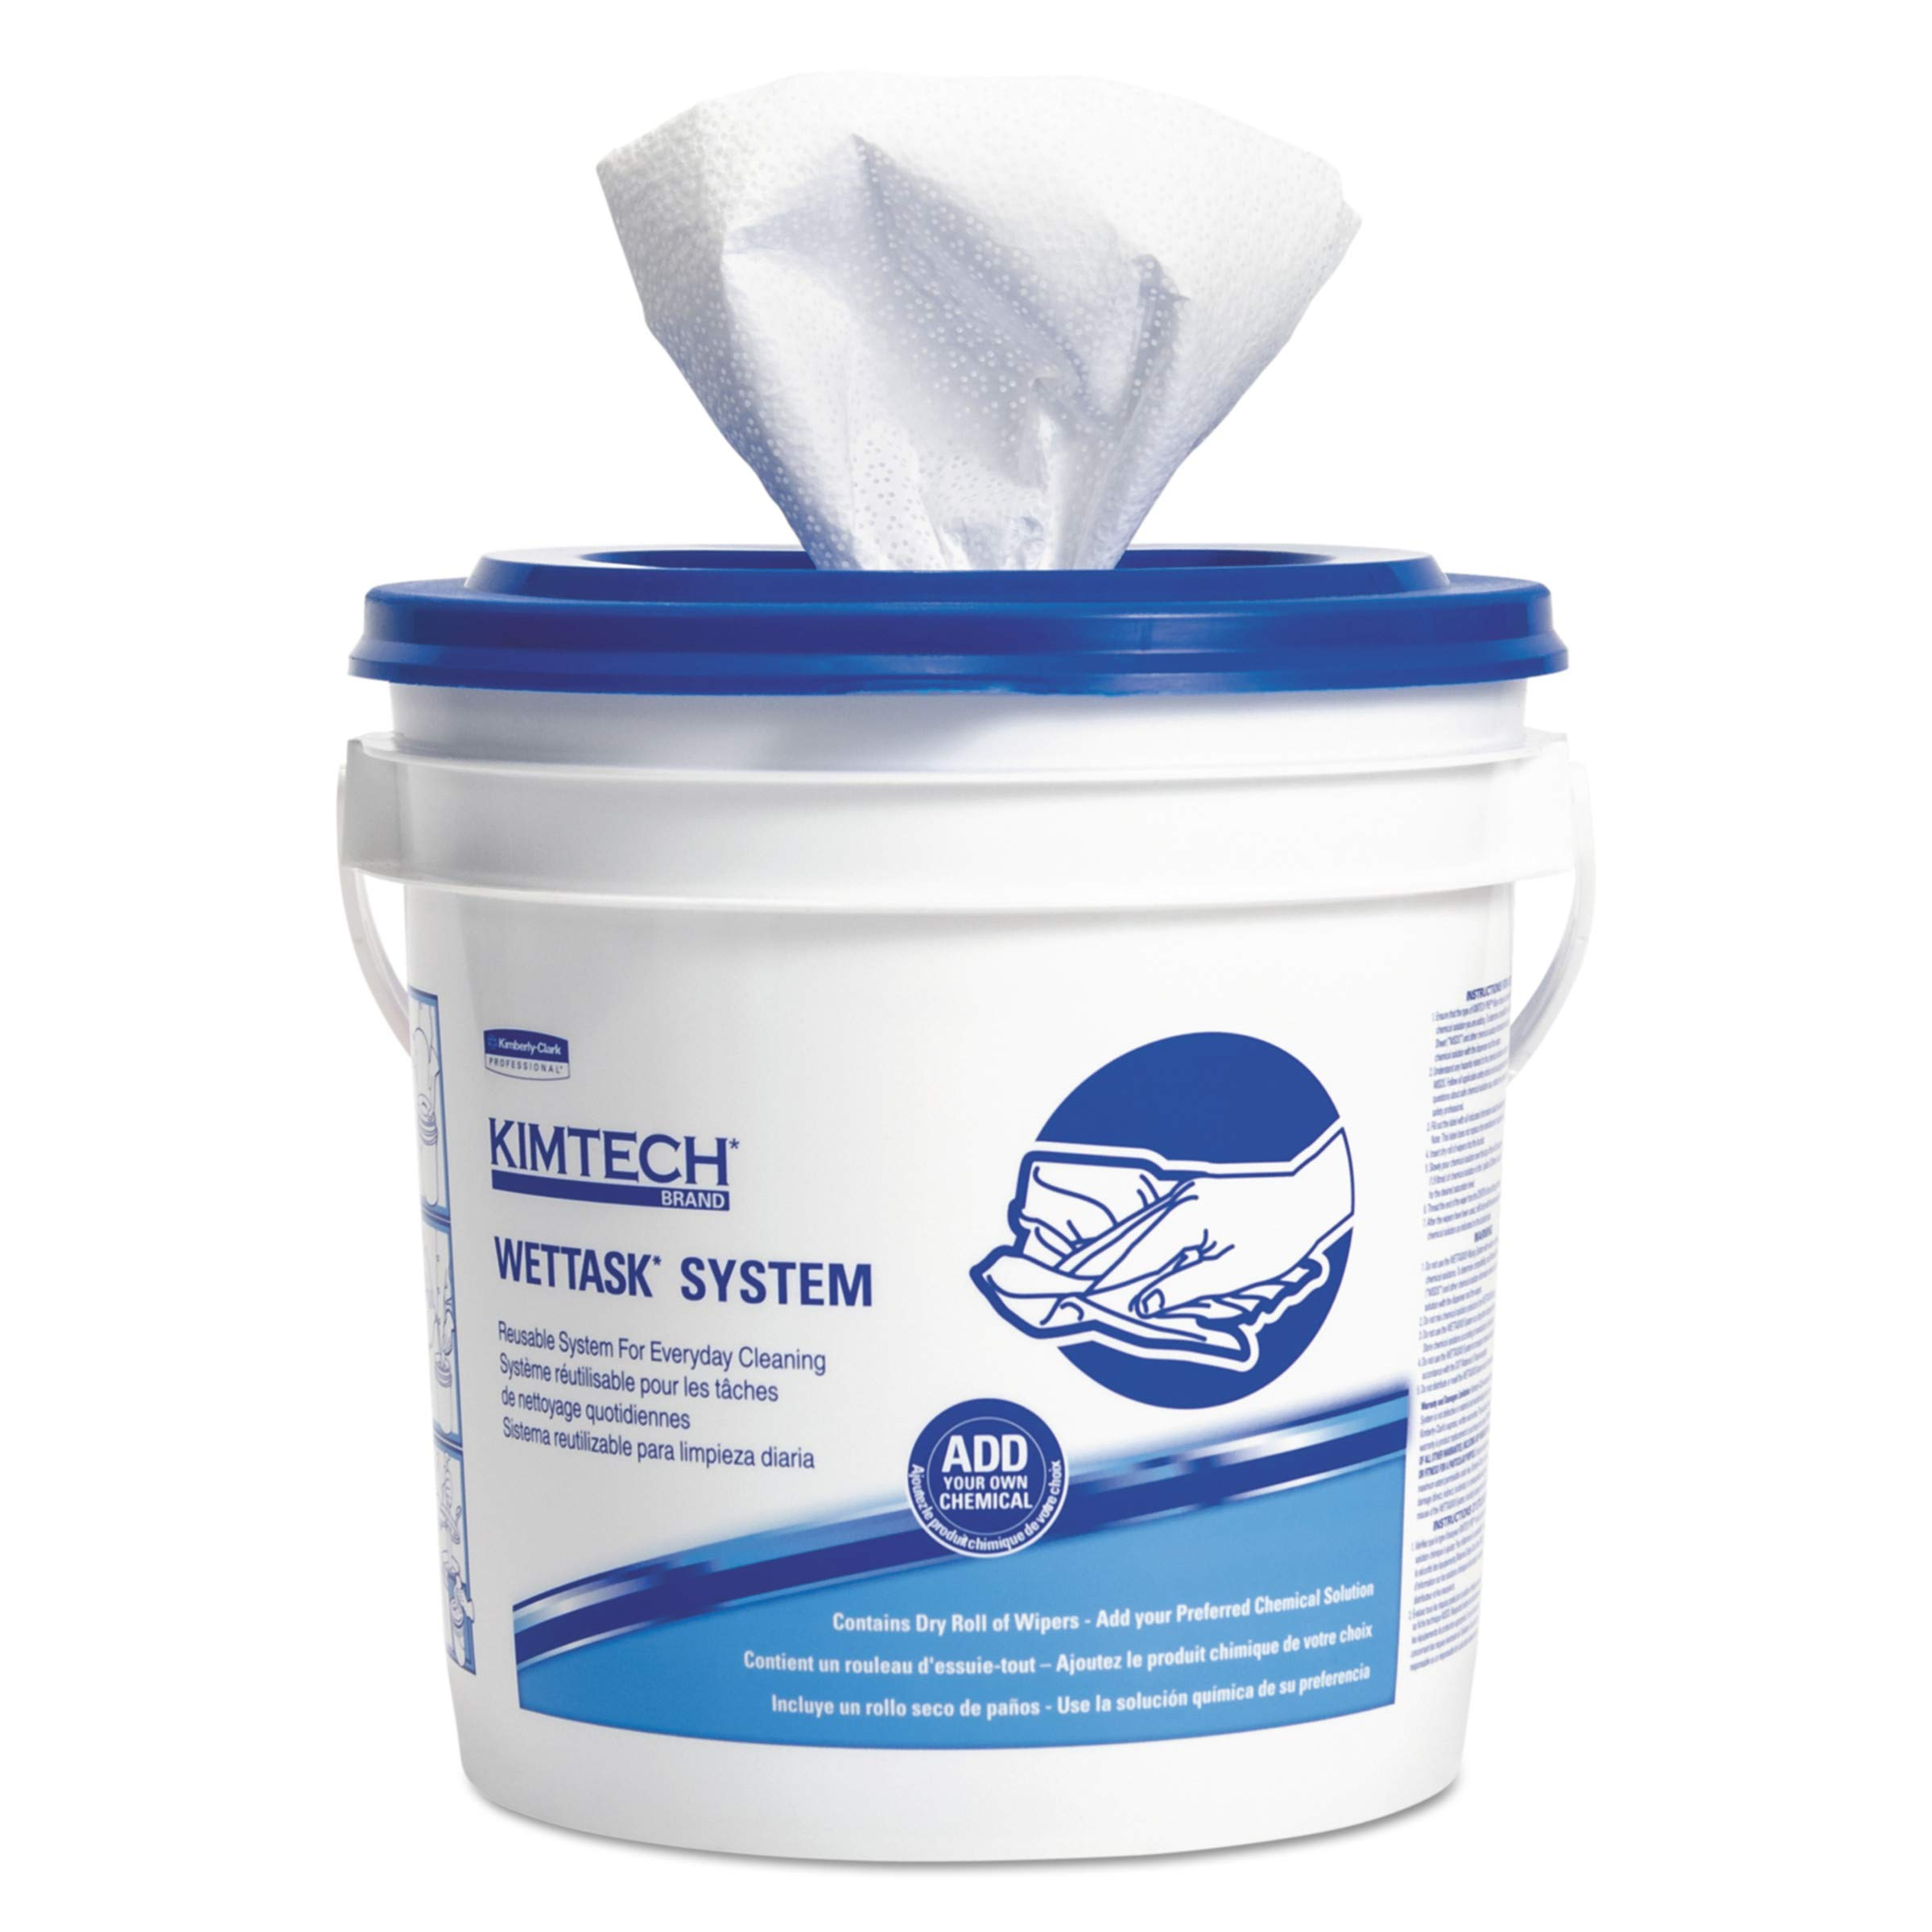 Kimtech 06001 WetTask System for Solvents, Free Bucket, 12 x 12 1/2, 60 per Roll (Case of 5 Rolls)